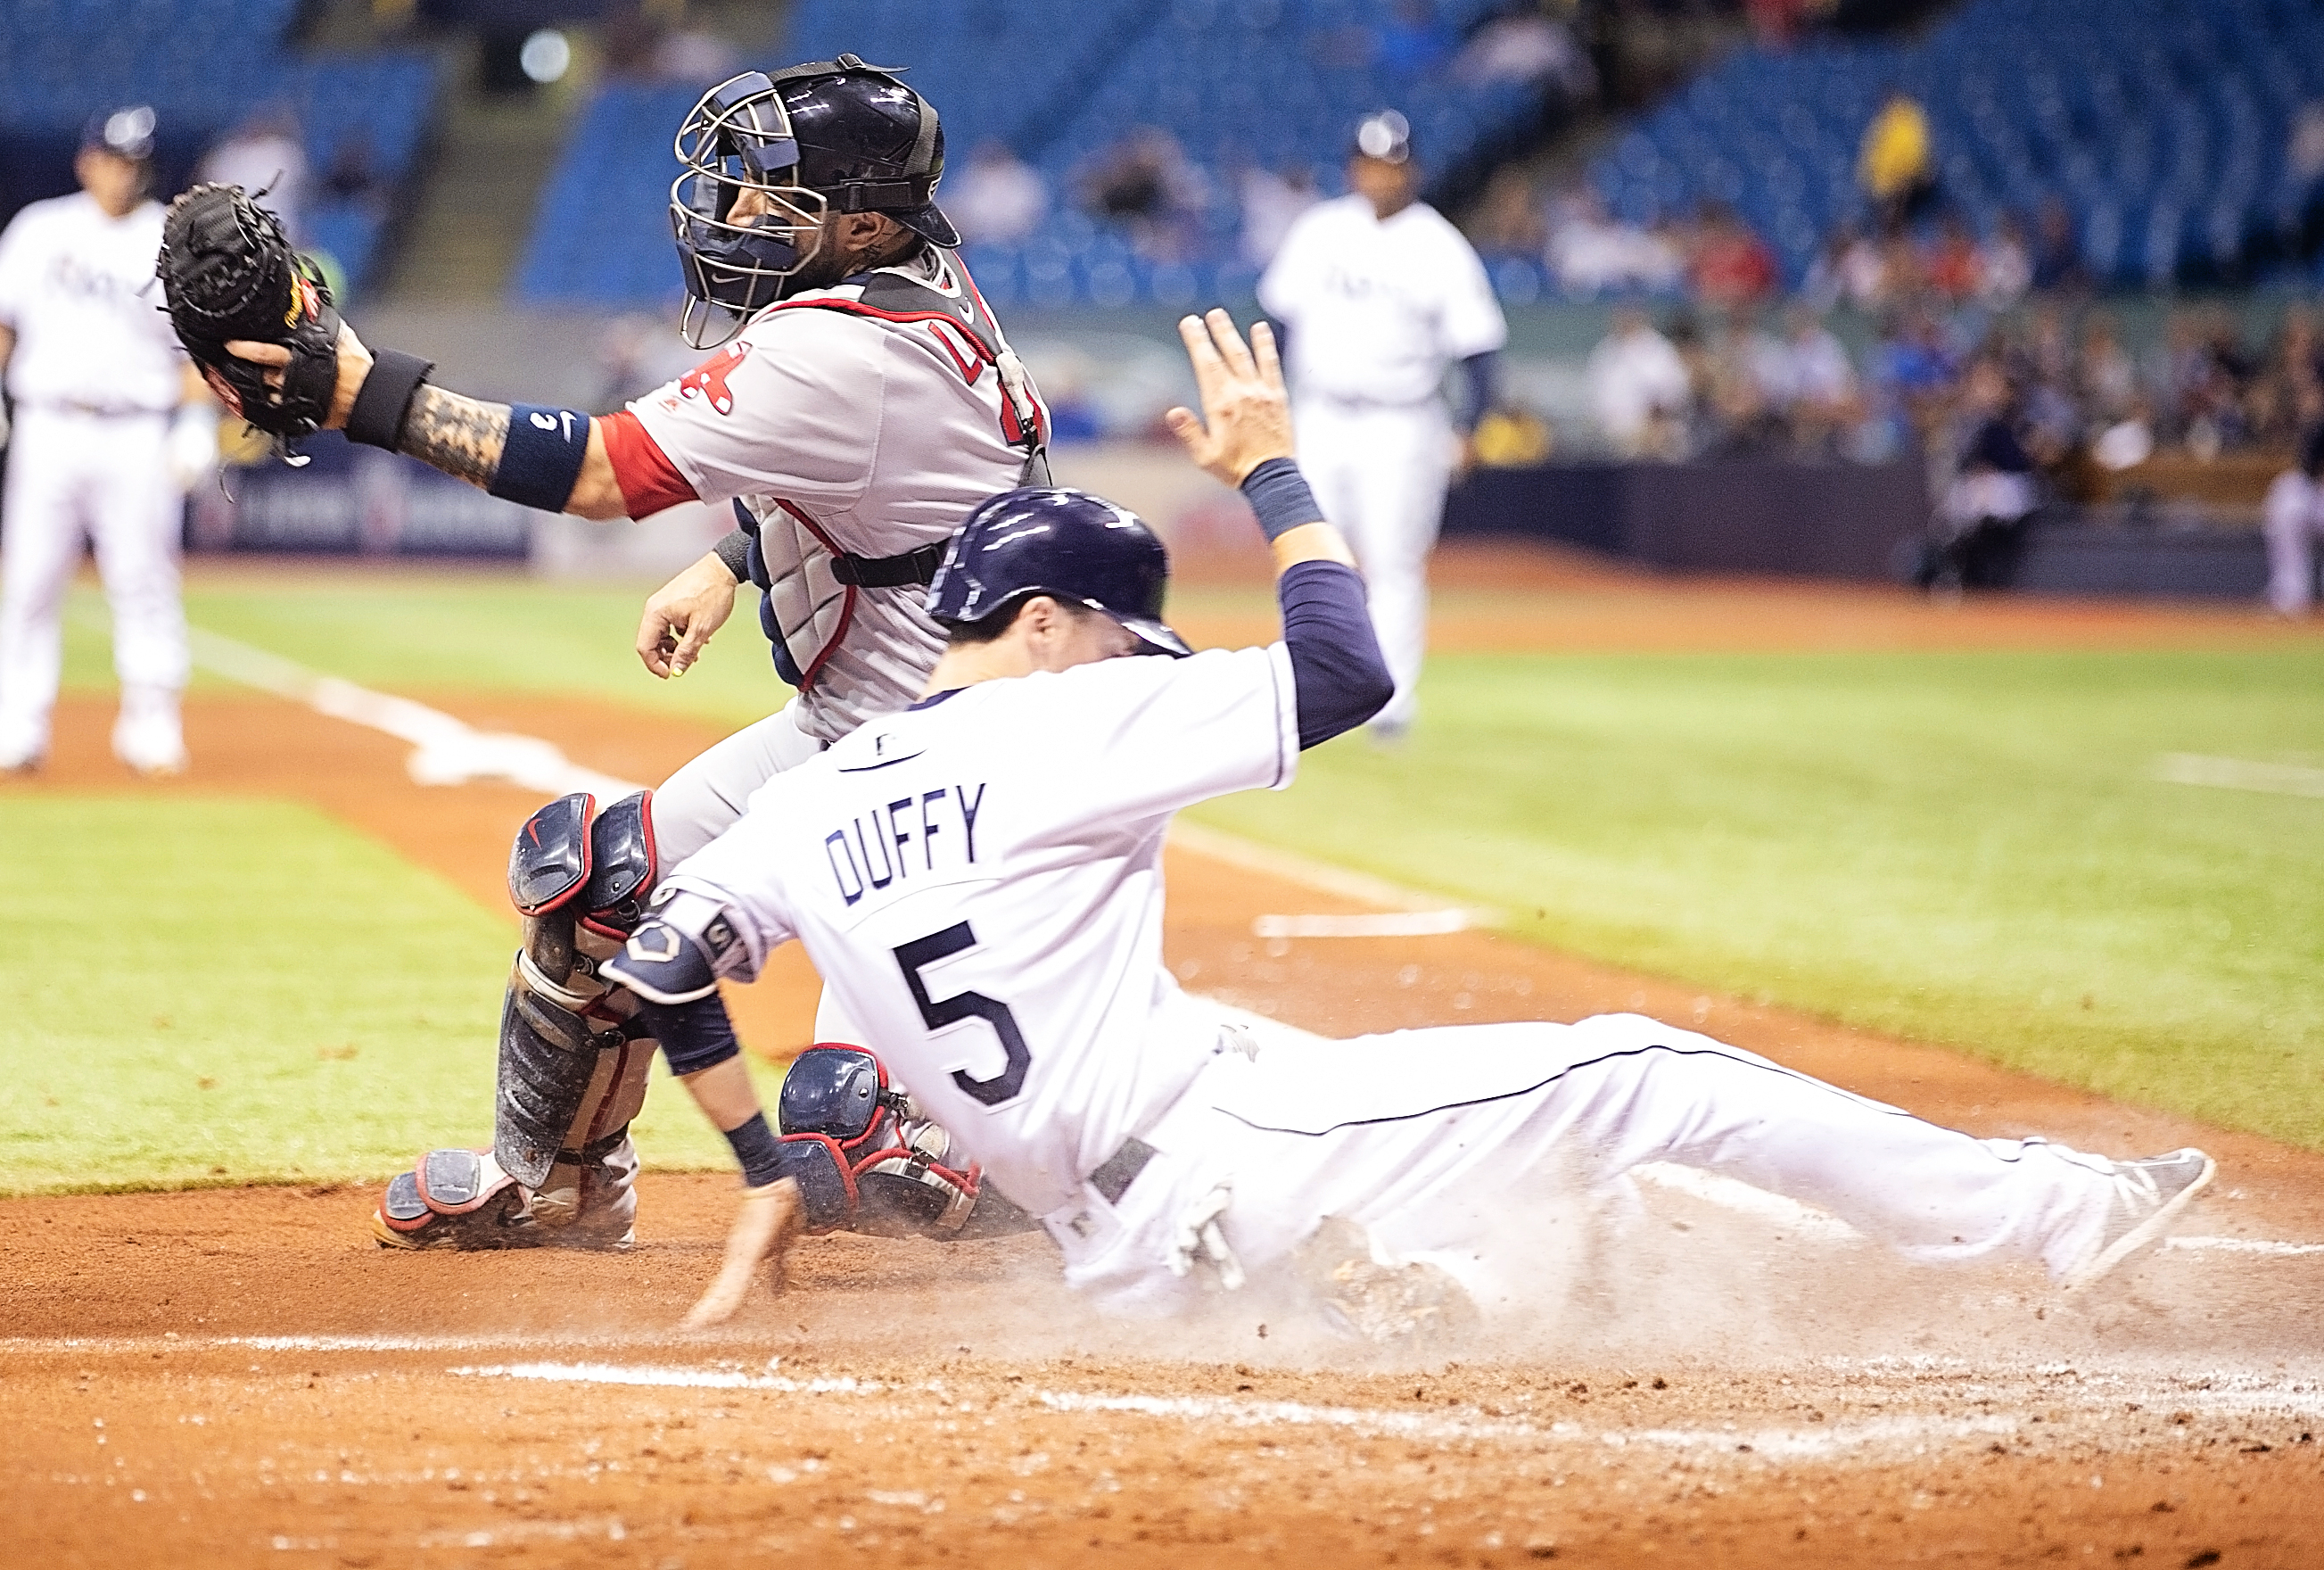 Duffy sneaks in for another Rays' run./CARMEN MANDATO